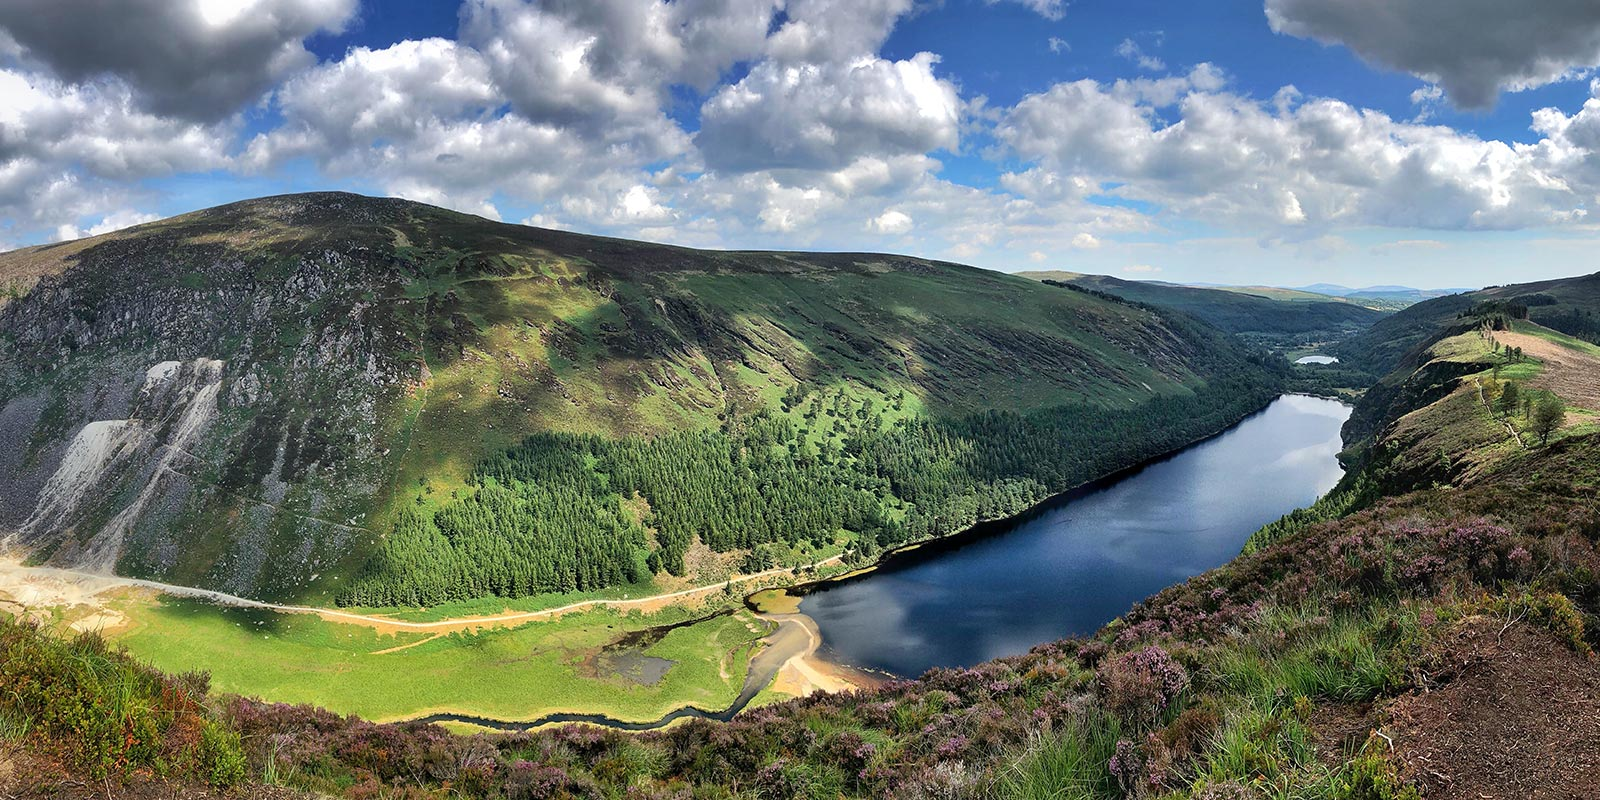 The Spinc Glendalough